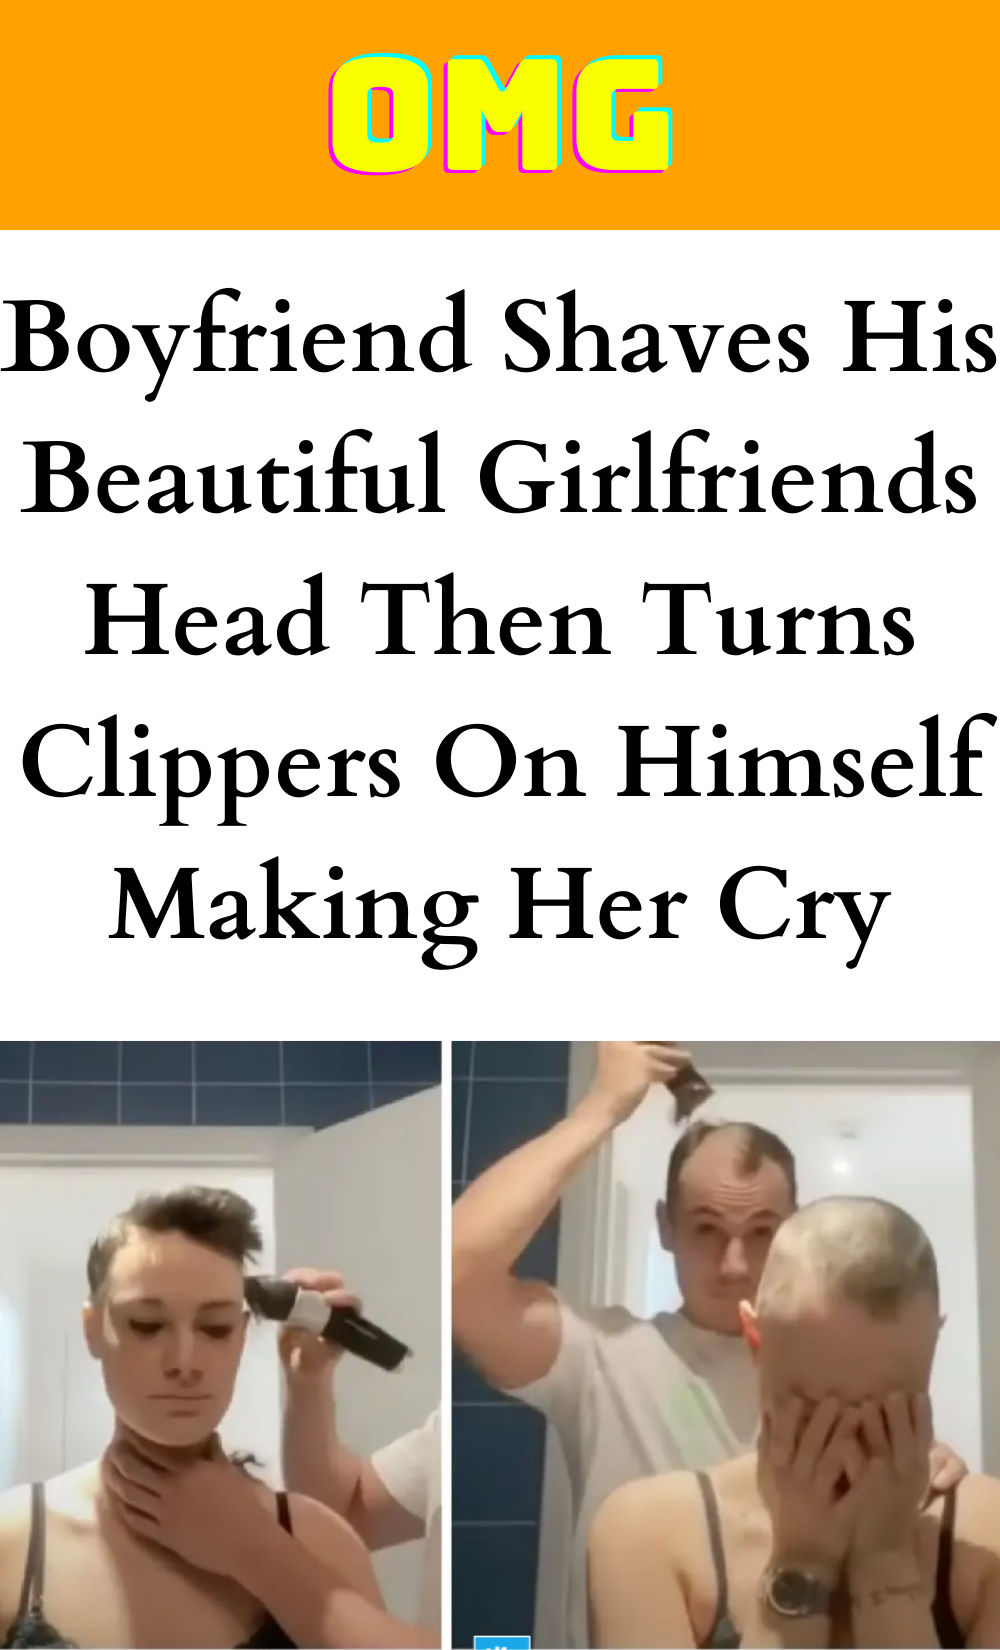 Boyfriend Shaves His Beautiful Girlfriends Head Then Turns Clippers On Himself Making Her Cry